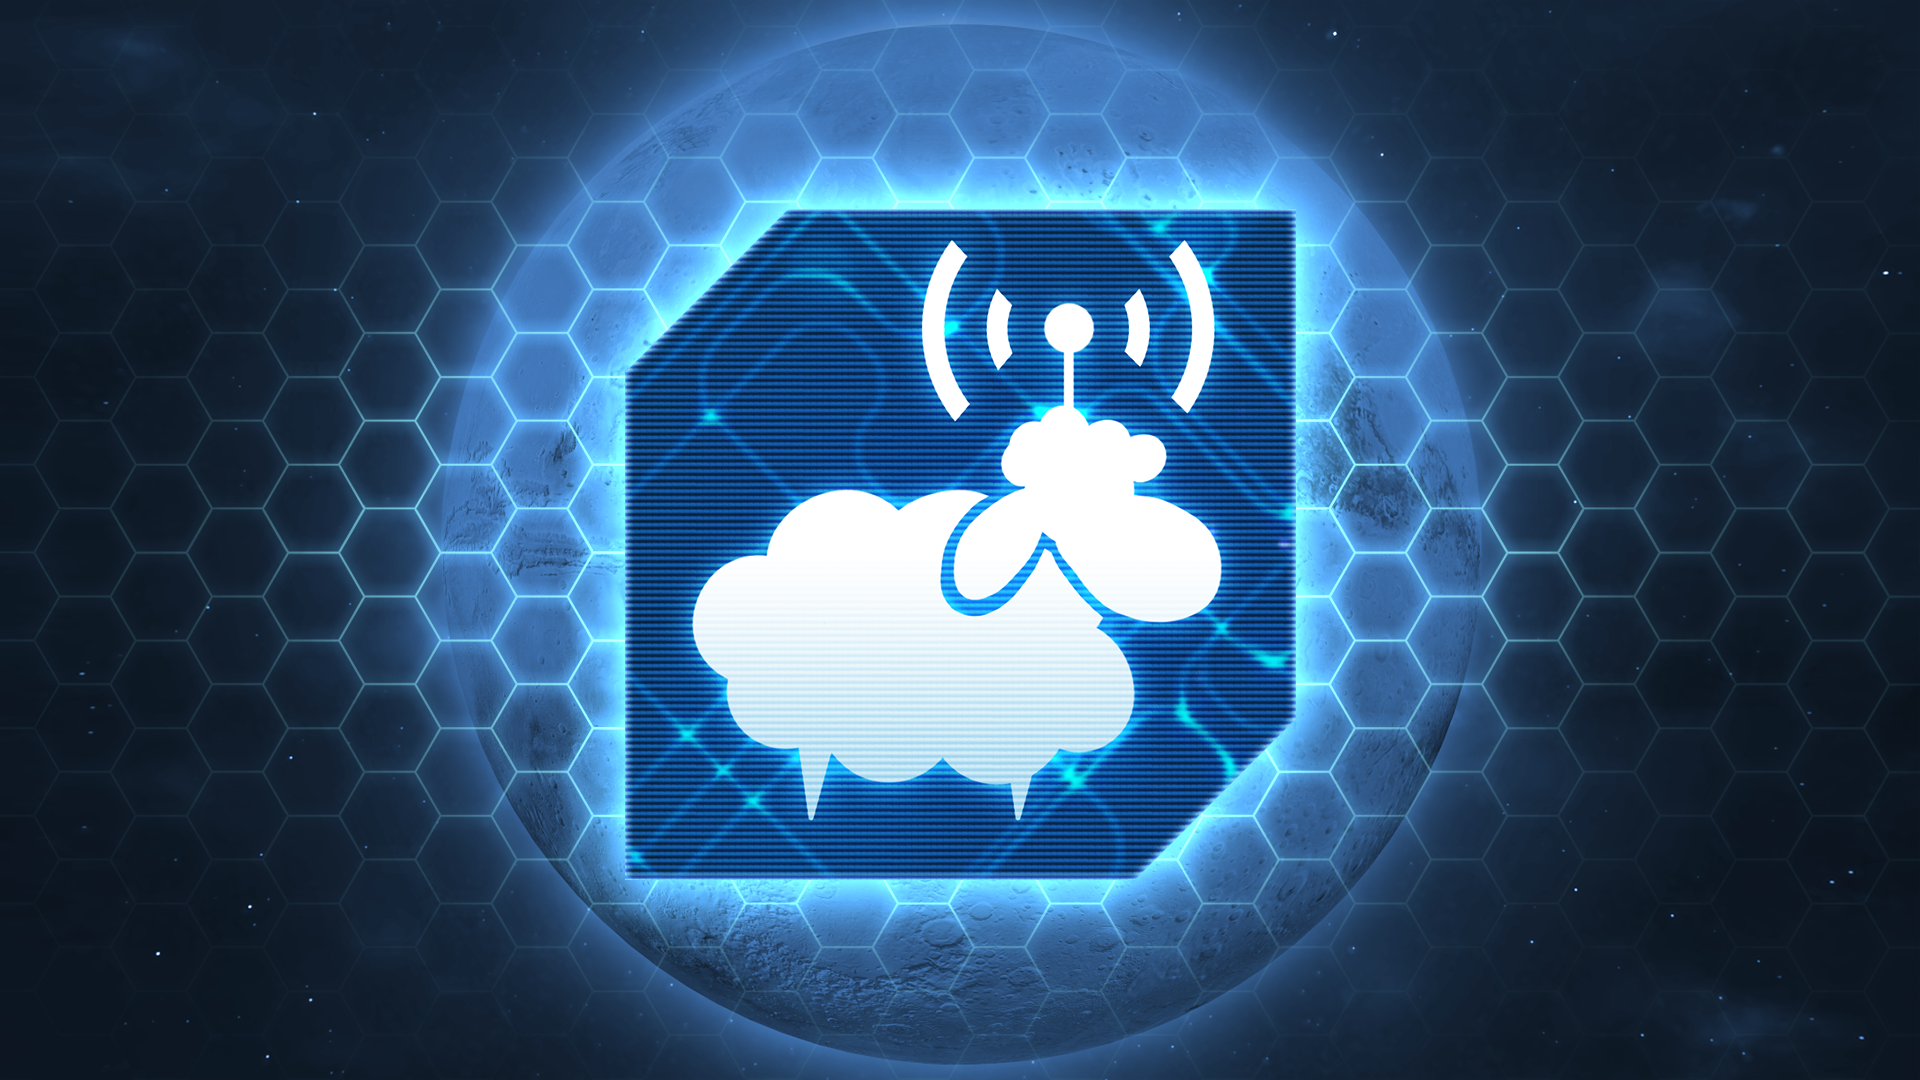 Icon for Do Androids Dream of Electric Sheep?